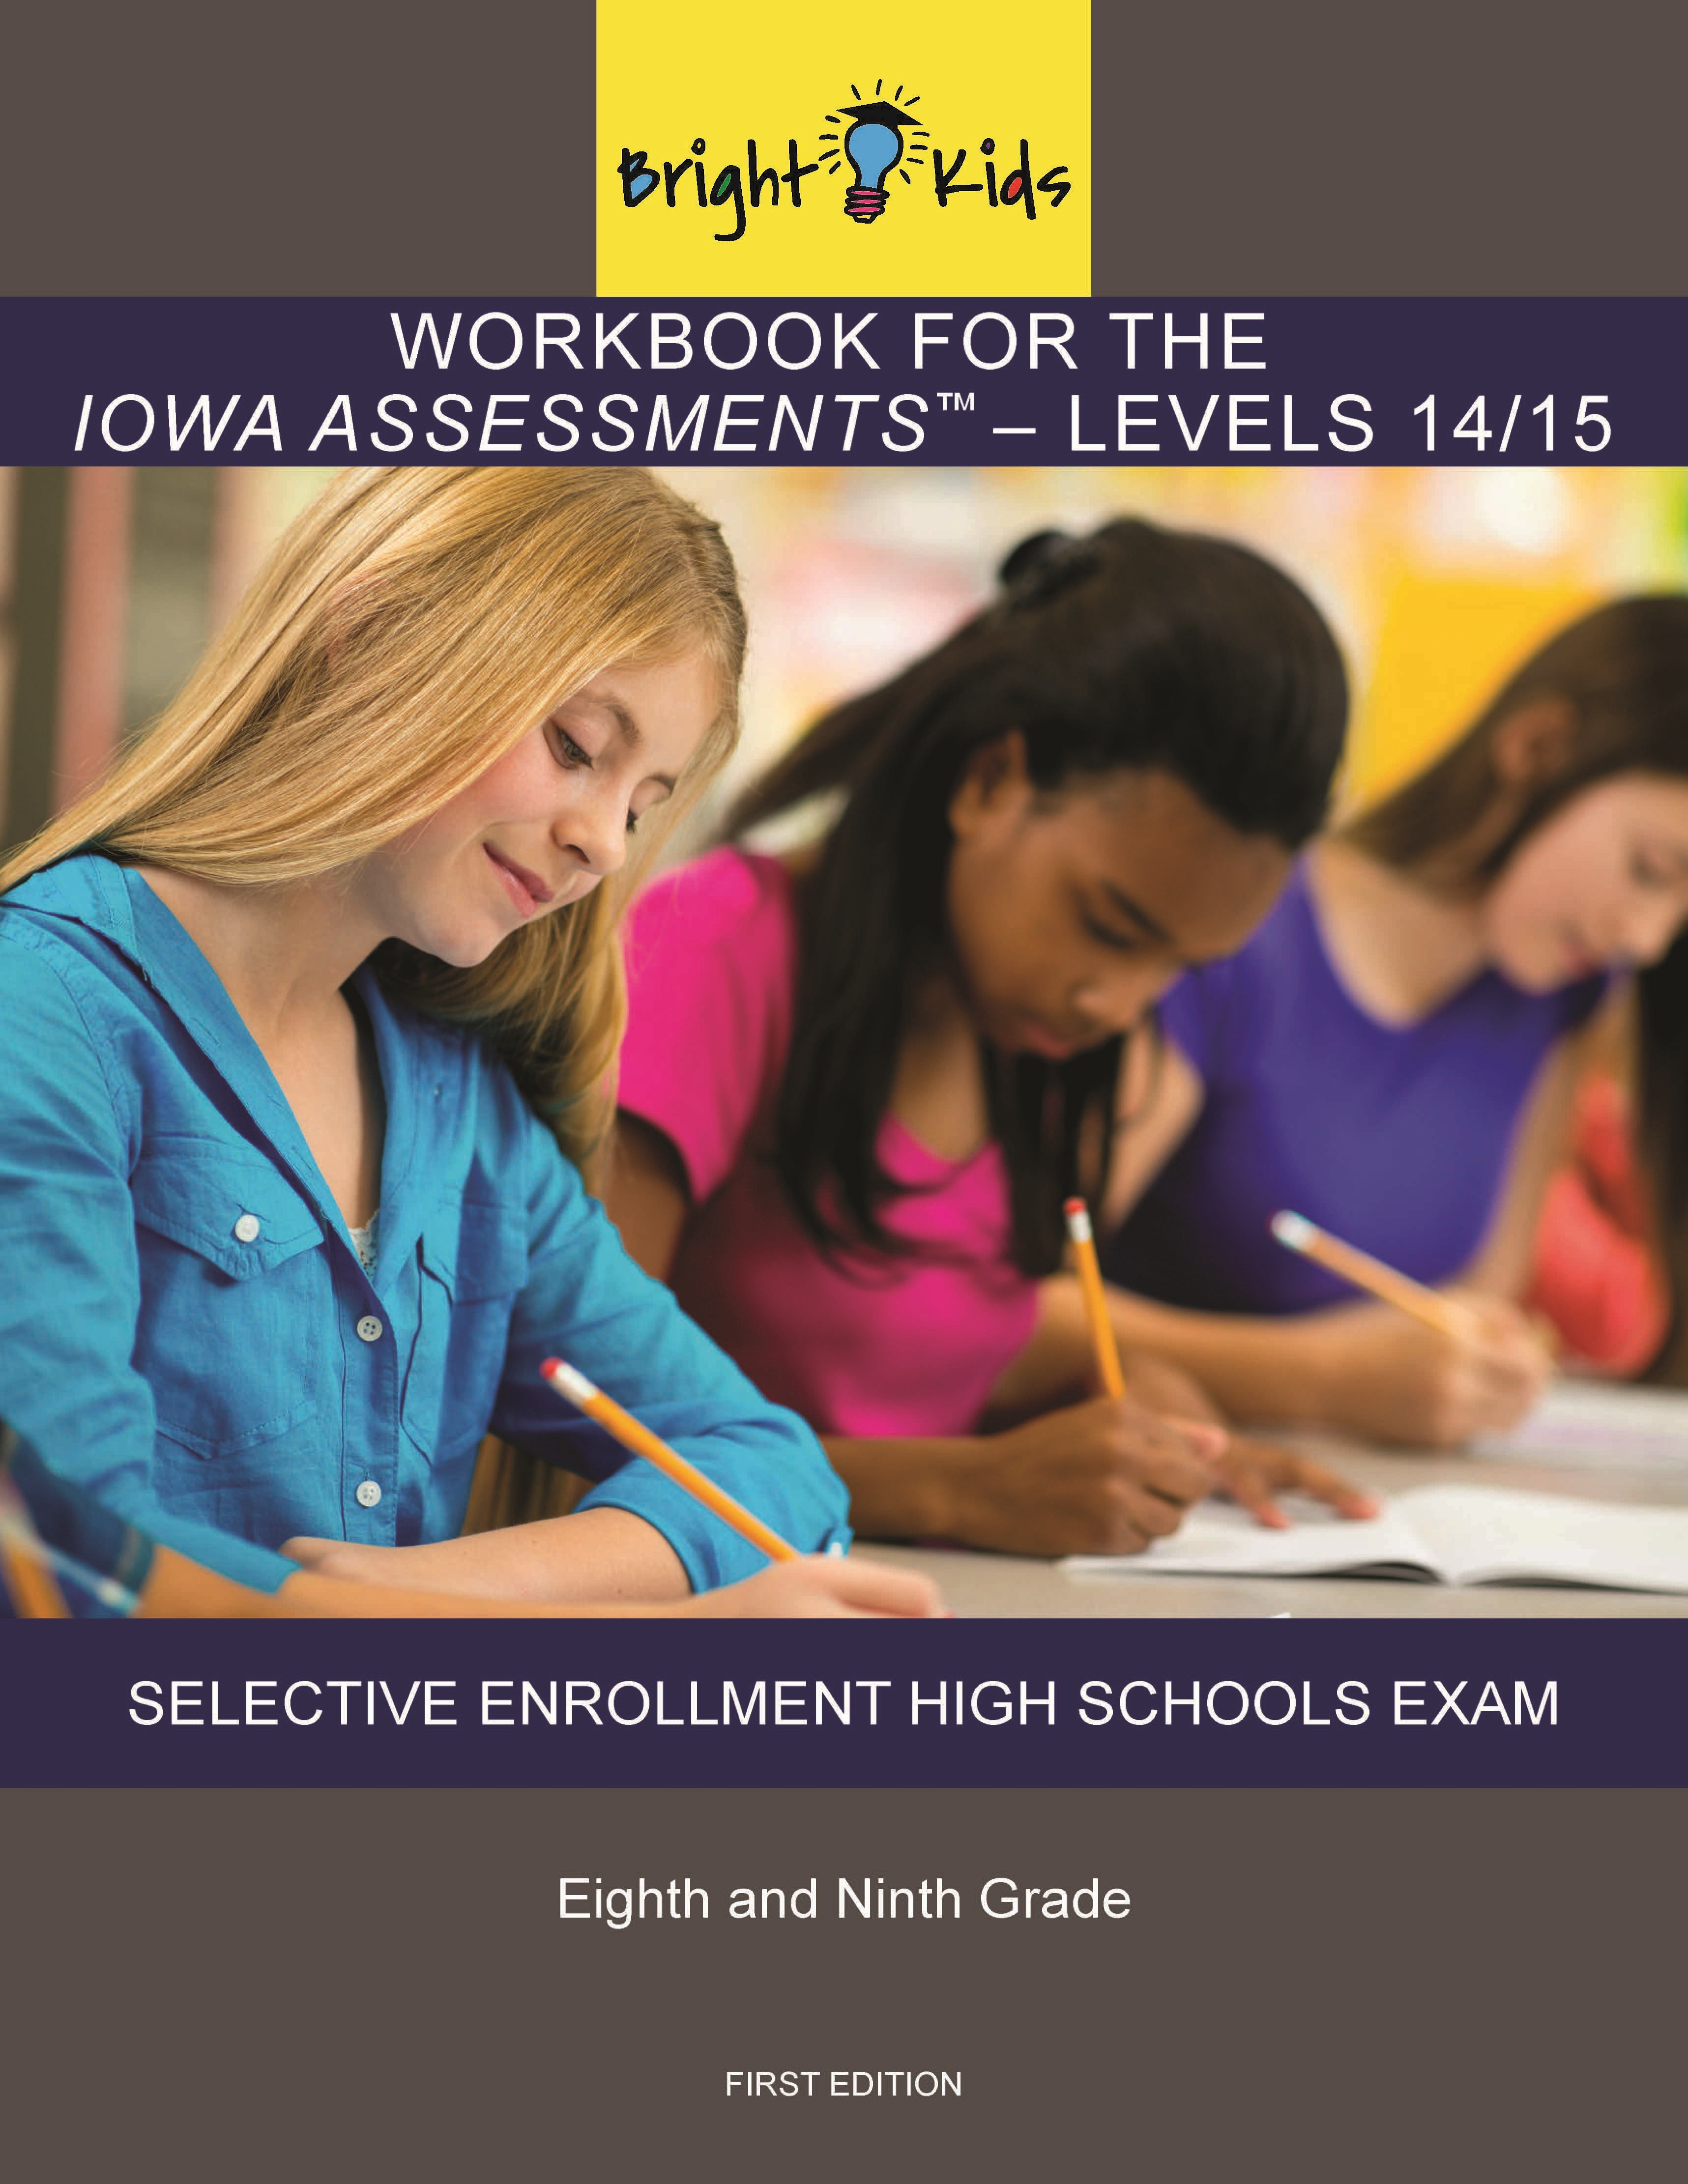 Bright Kids Publishes Iowa Assessments Selective Enrollment High School Workbook For Levels 14